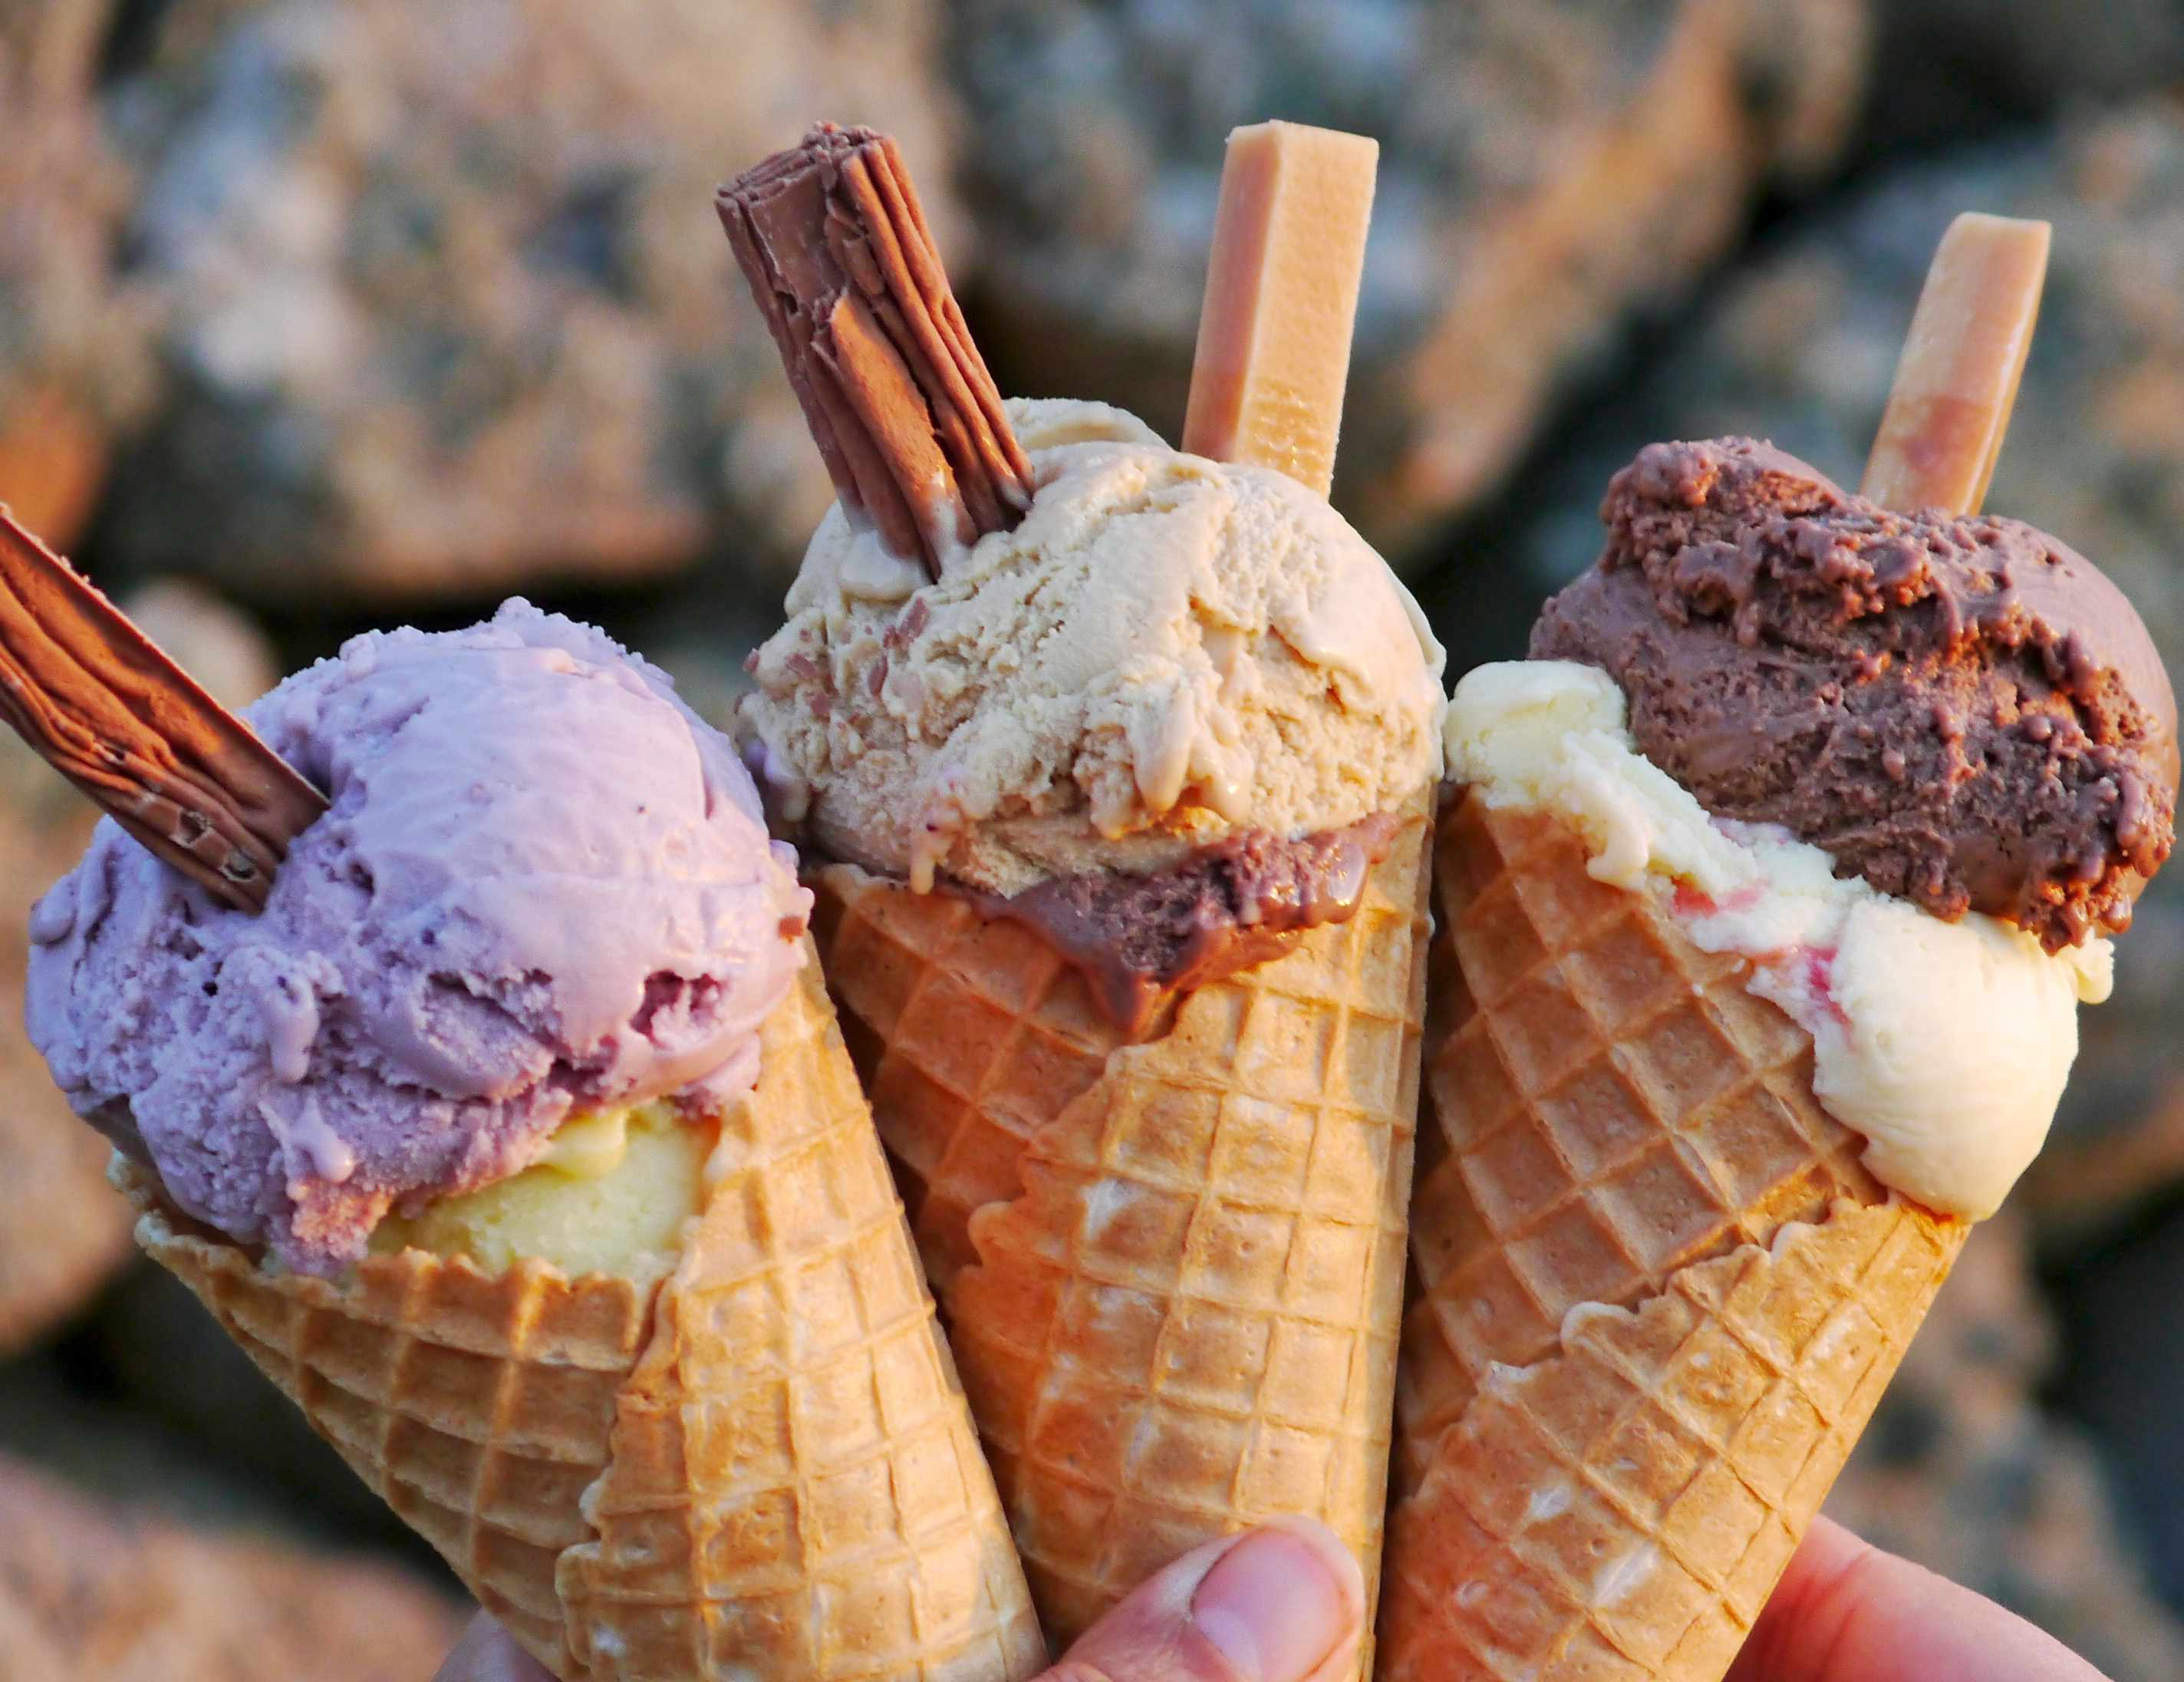 Isles of Scilly - Strawberry, Salted caramel and vanilla ice cream cones